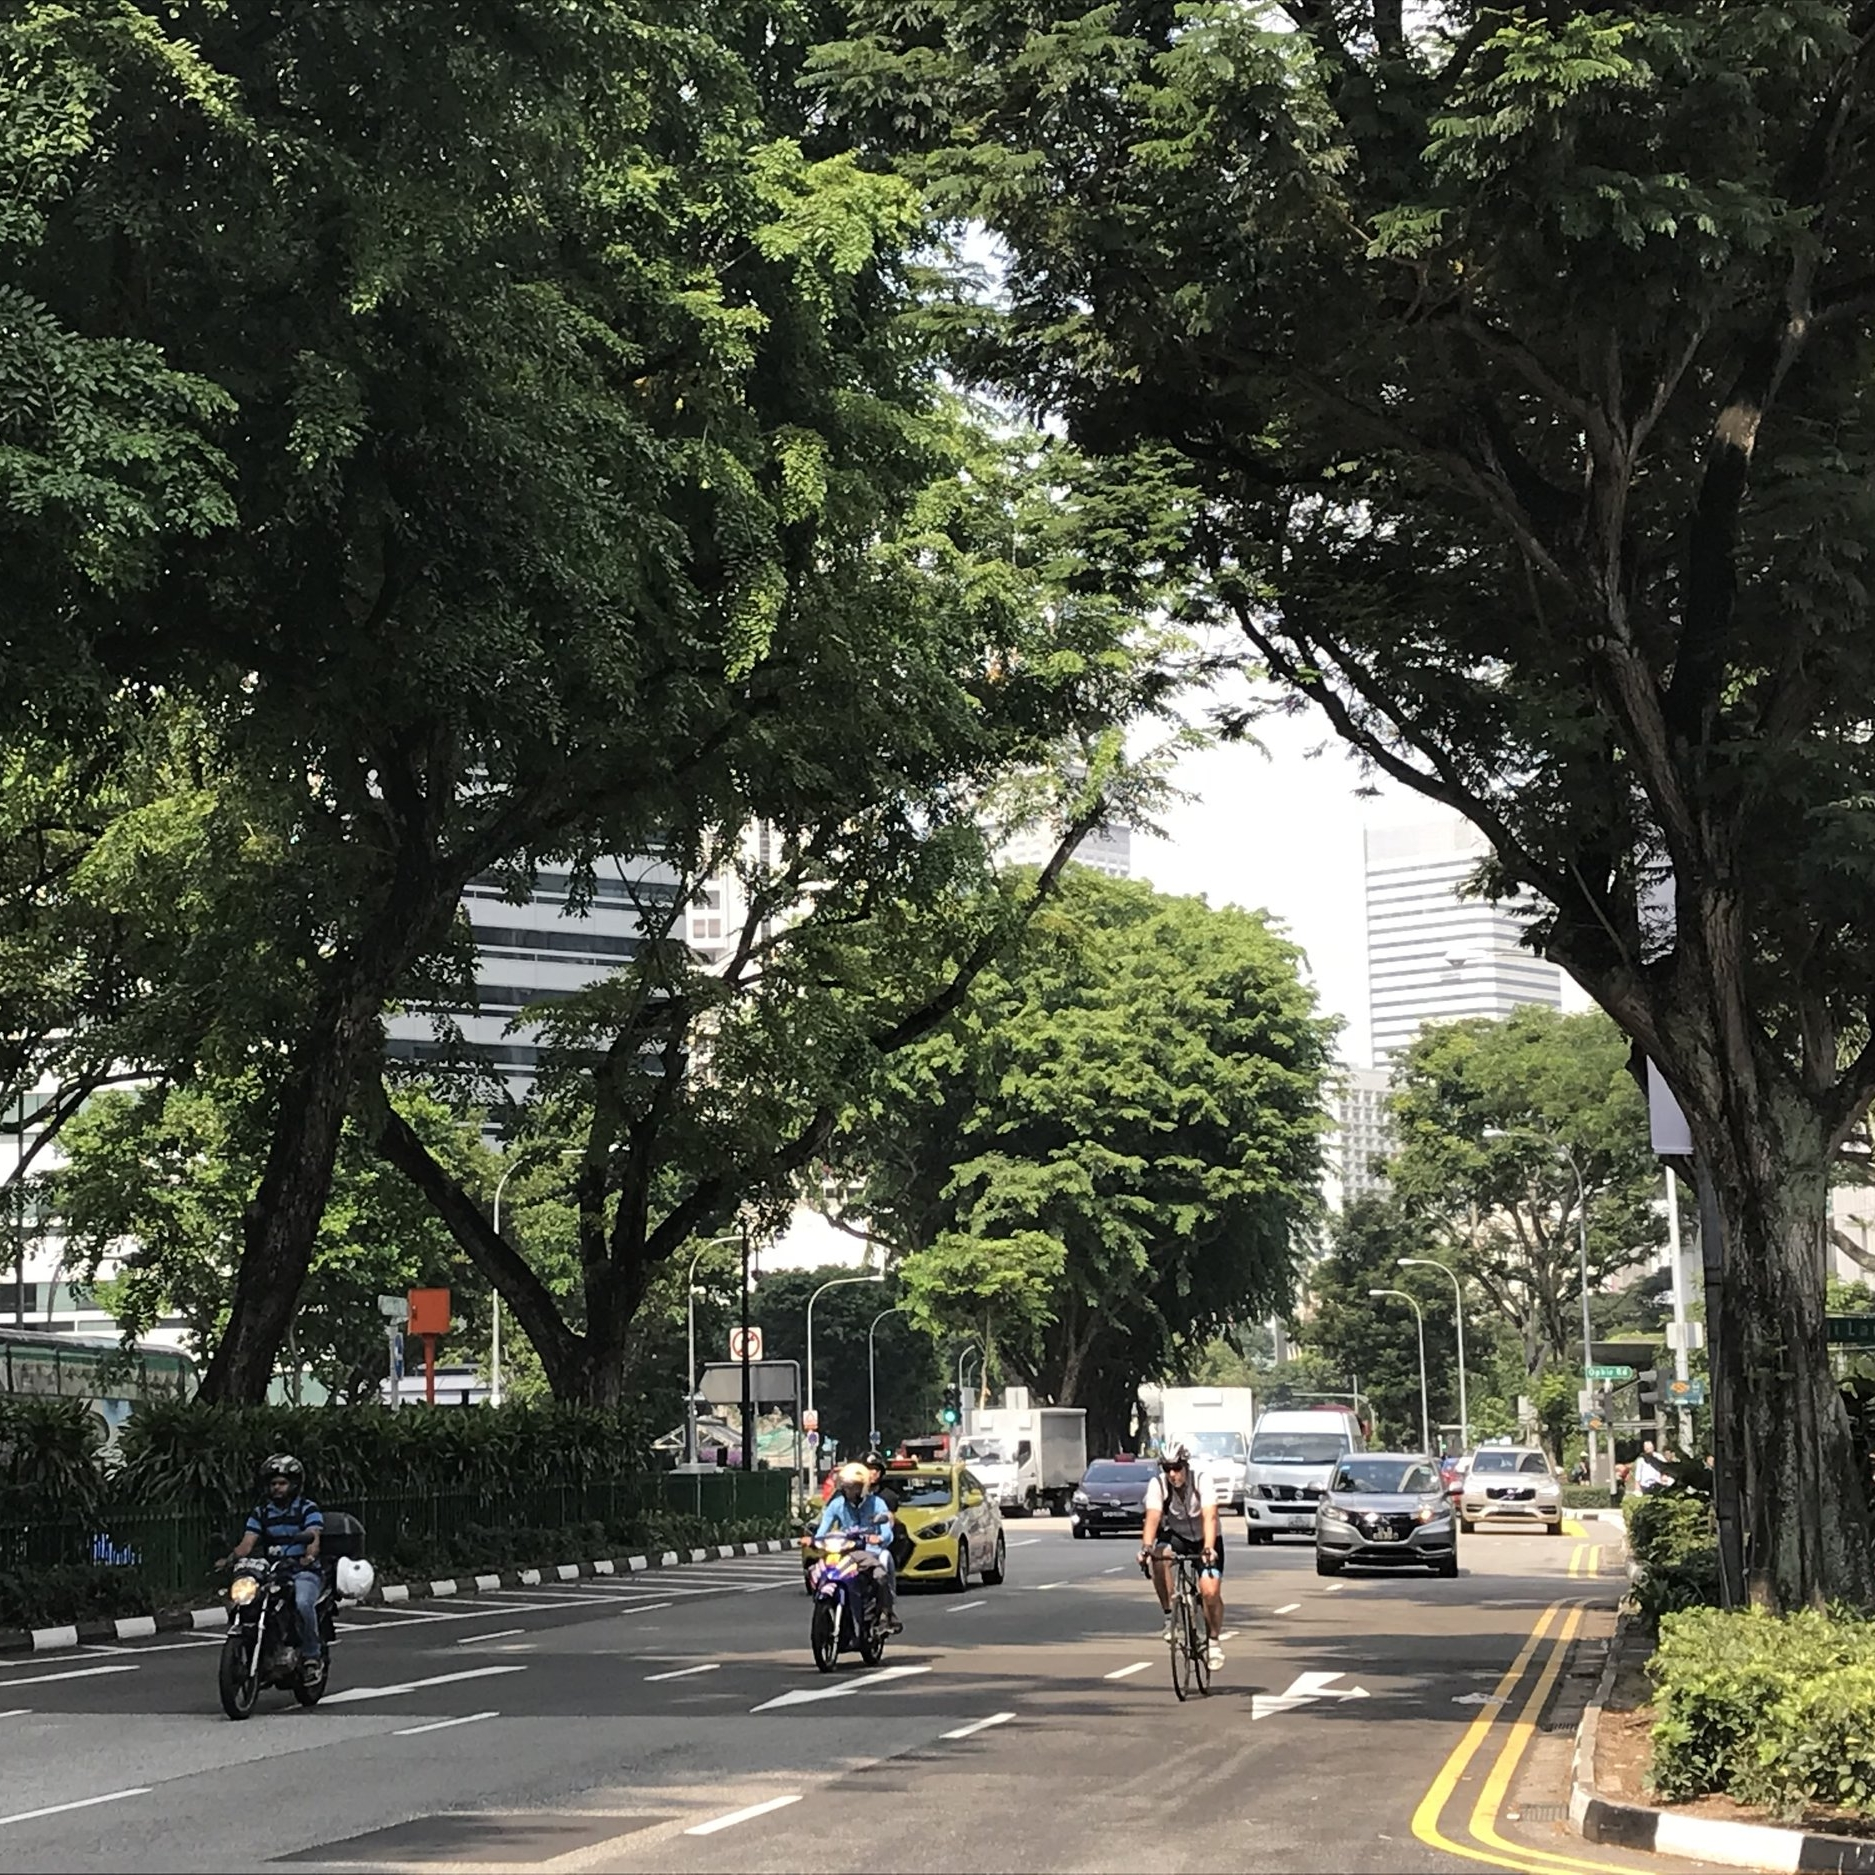 Singapore by The Doubtful Traveller